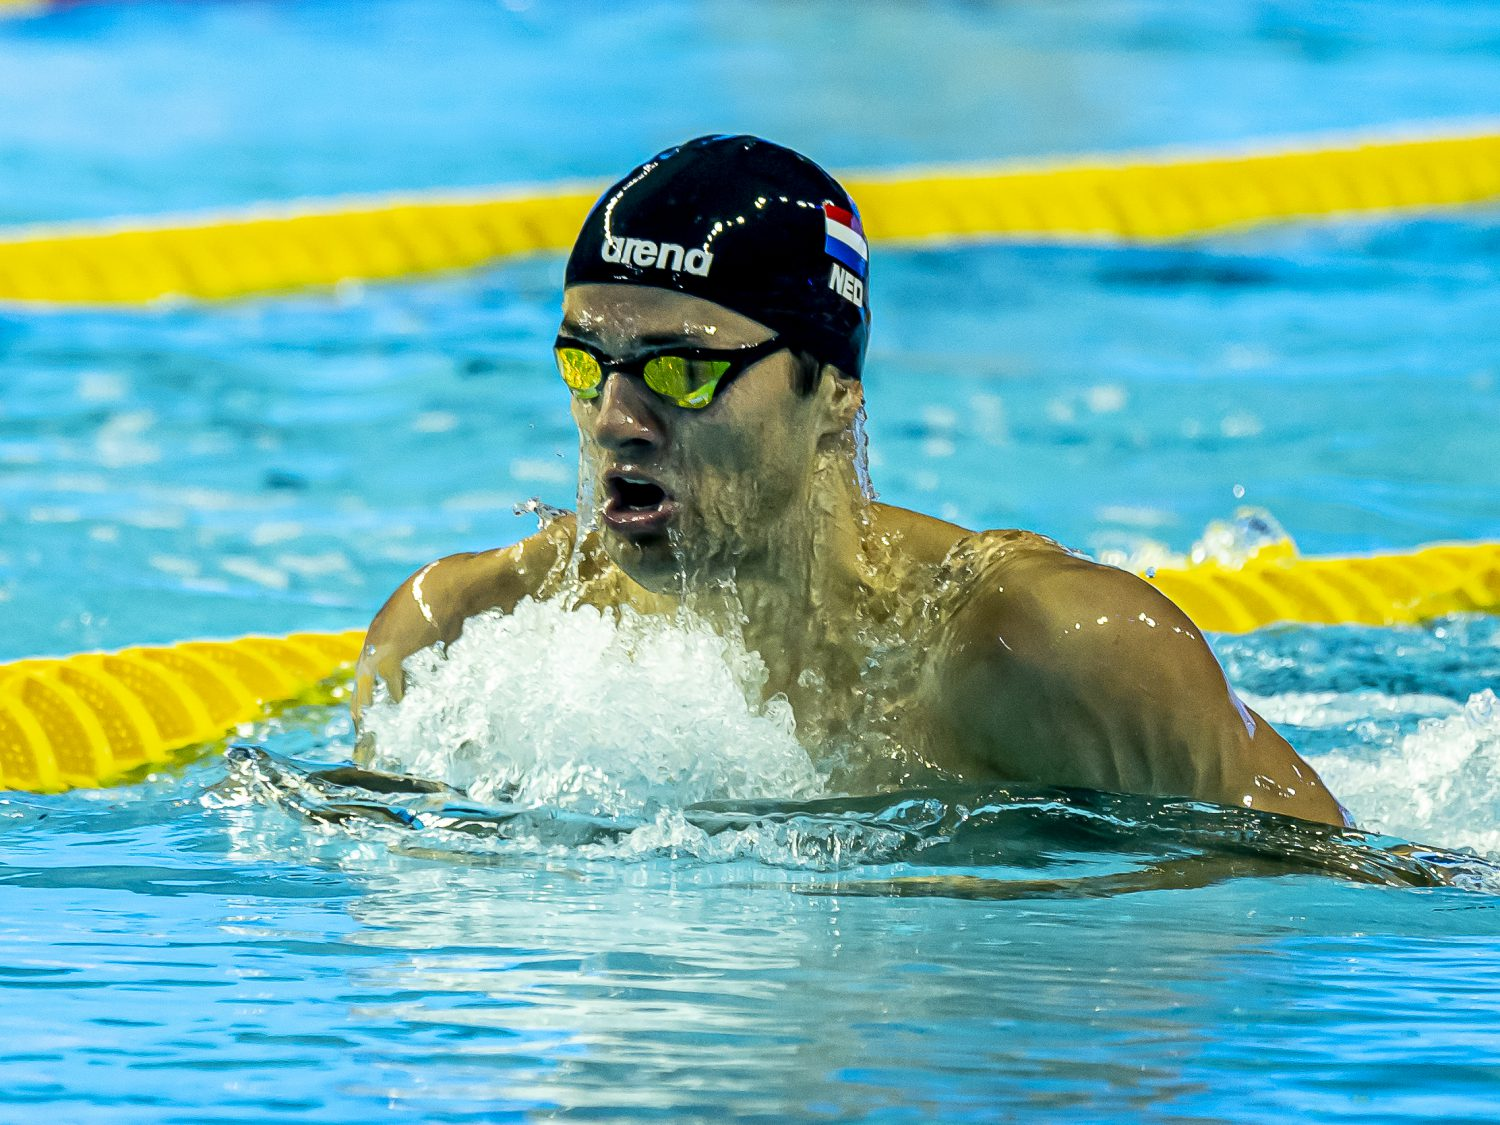 Arno Kamminga Hits Speedy 58.4 / 2:08.0 in Unofficial Time Trials in Antwerp - Swimming World News